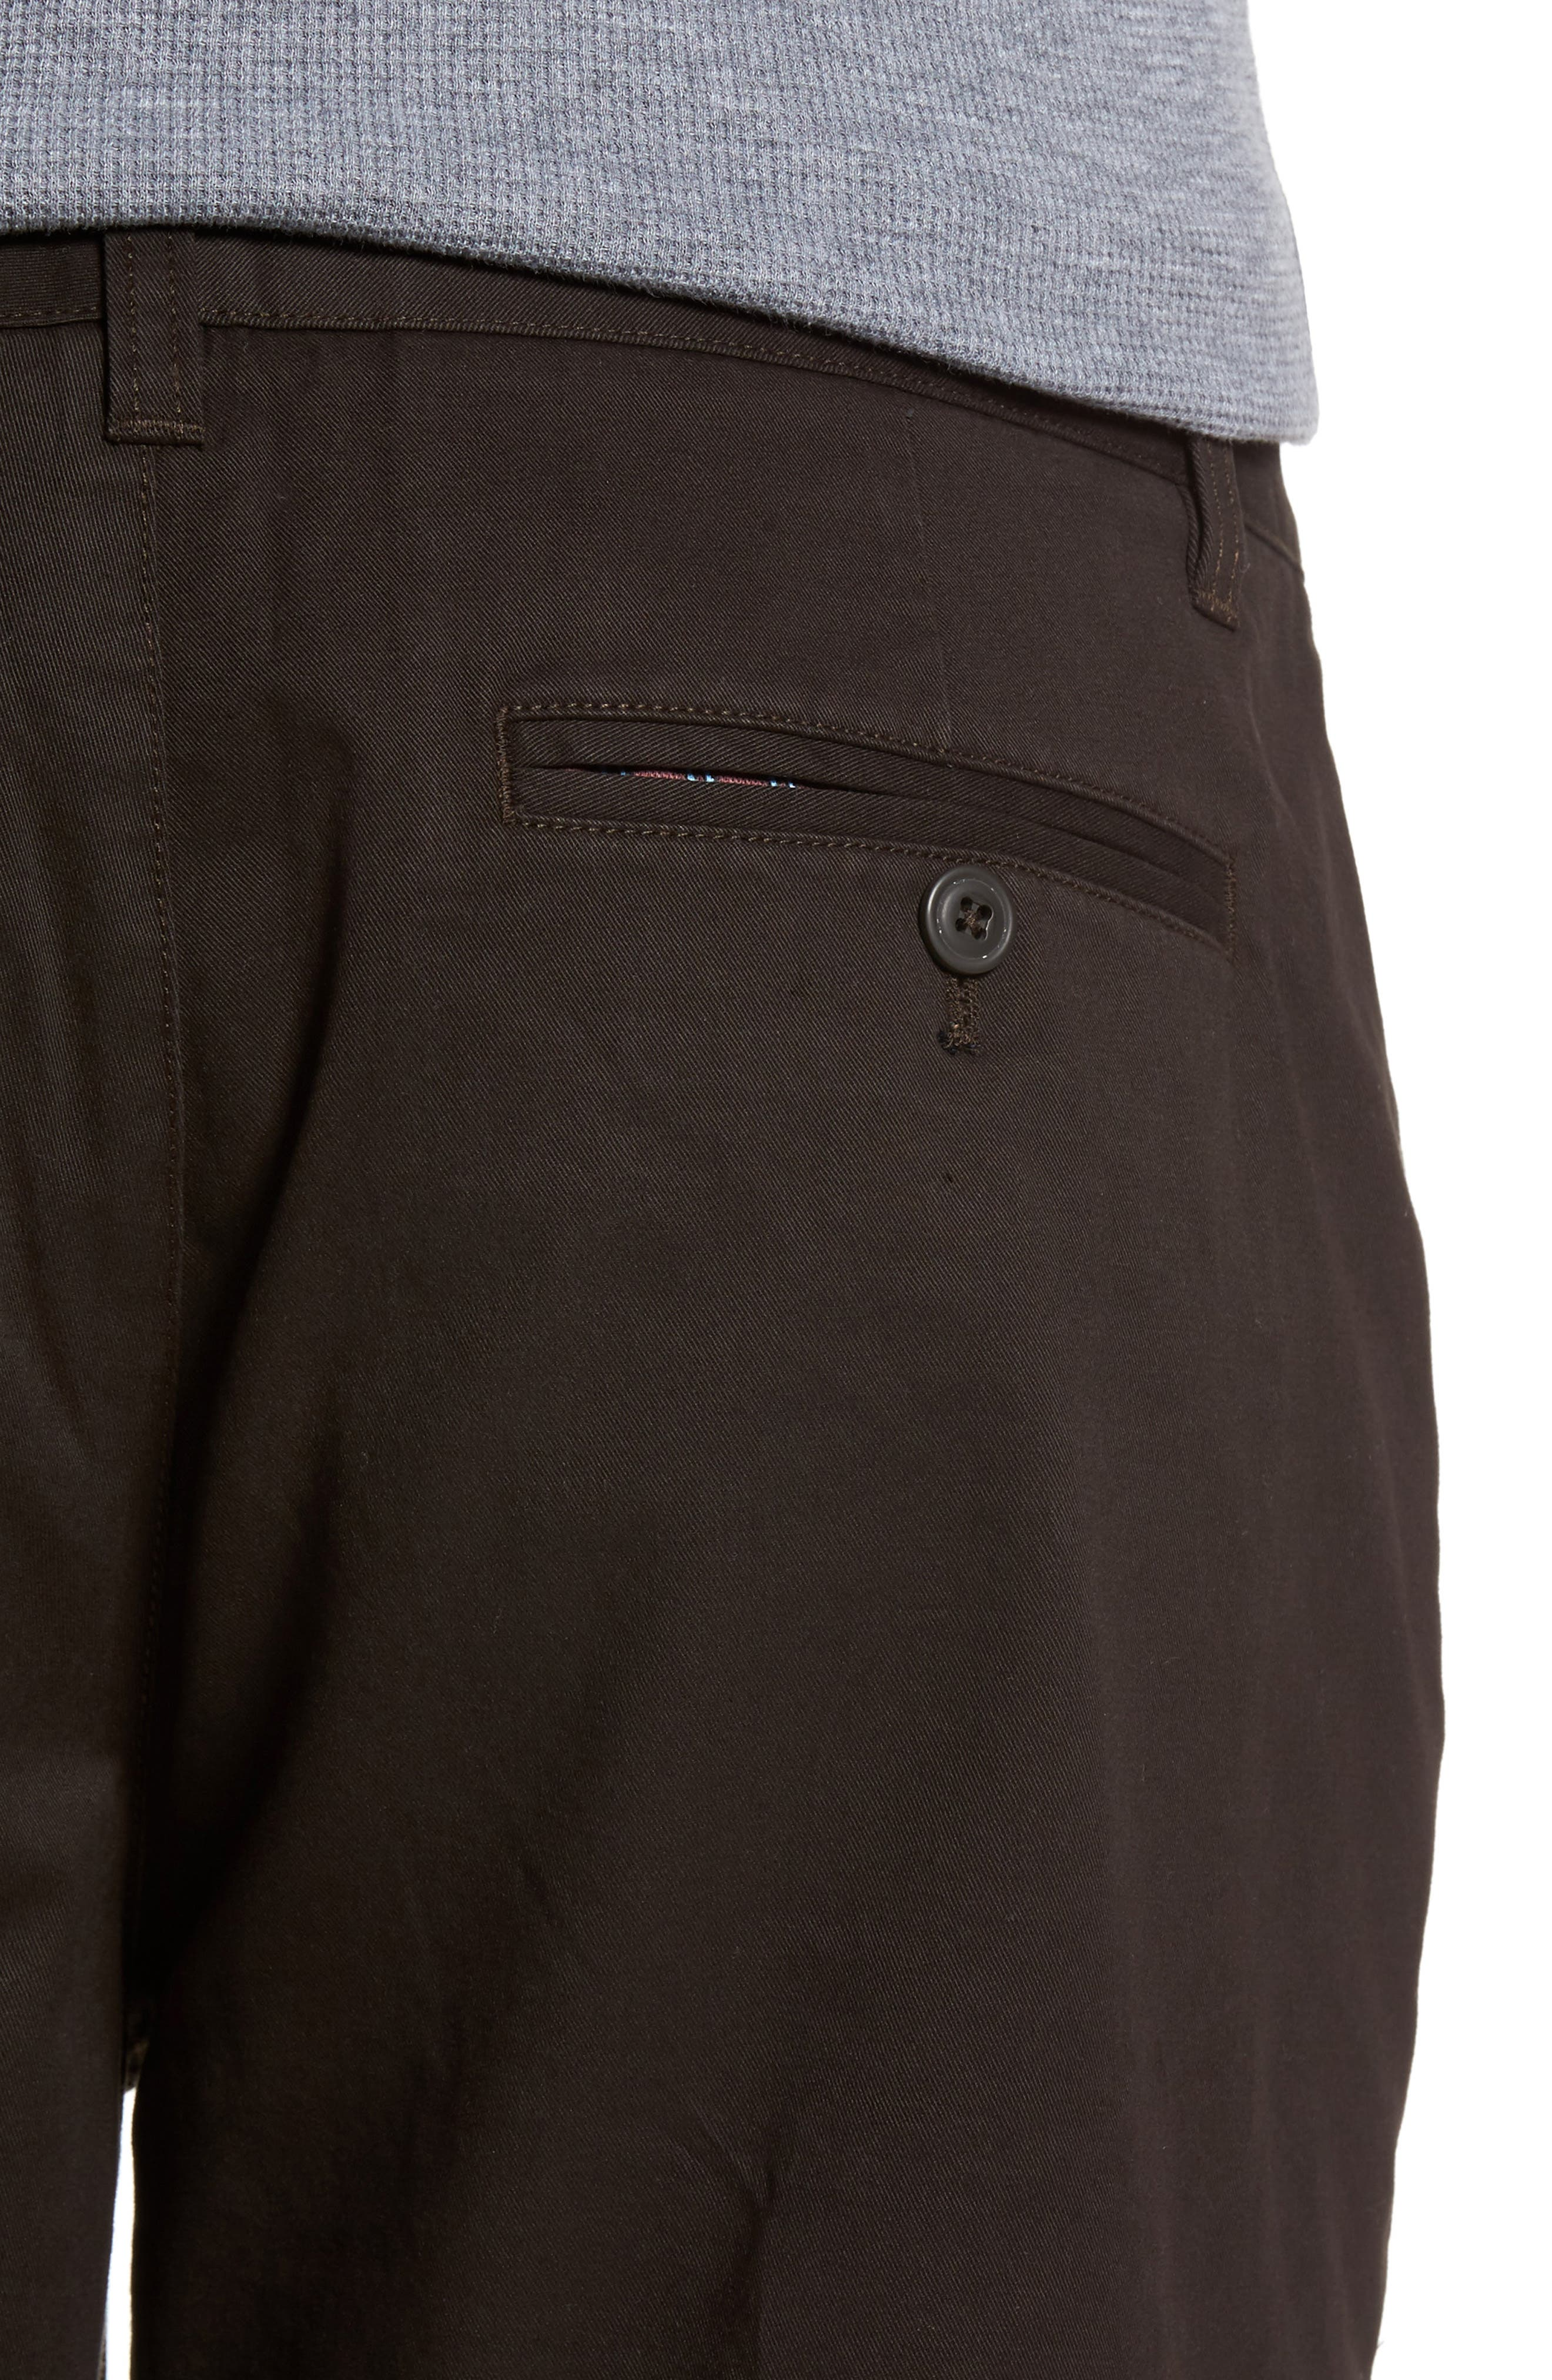 Straight Leg Stretch Washed Chinos,                             Alternate thumbnail 4, color,                             Chocolate Ale